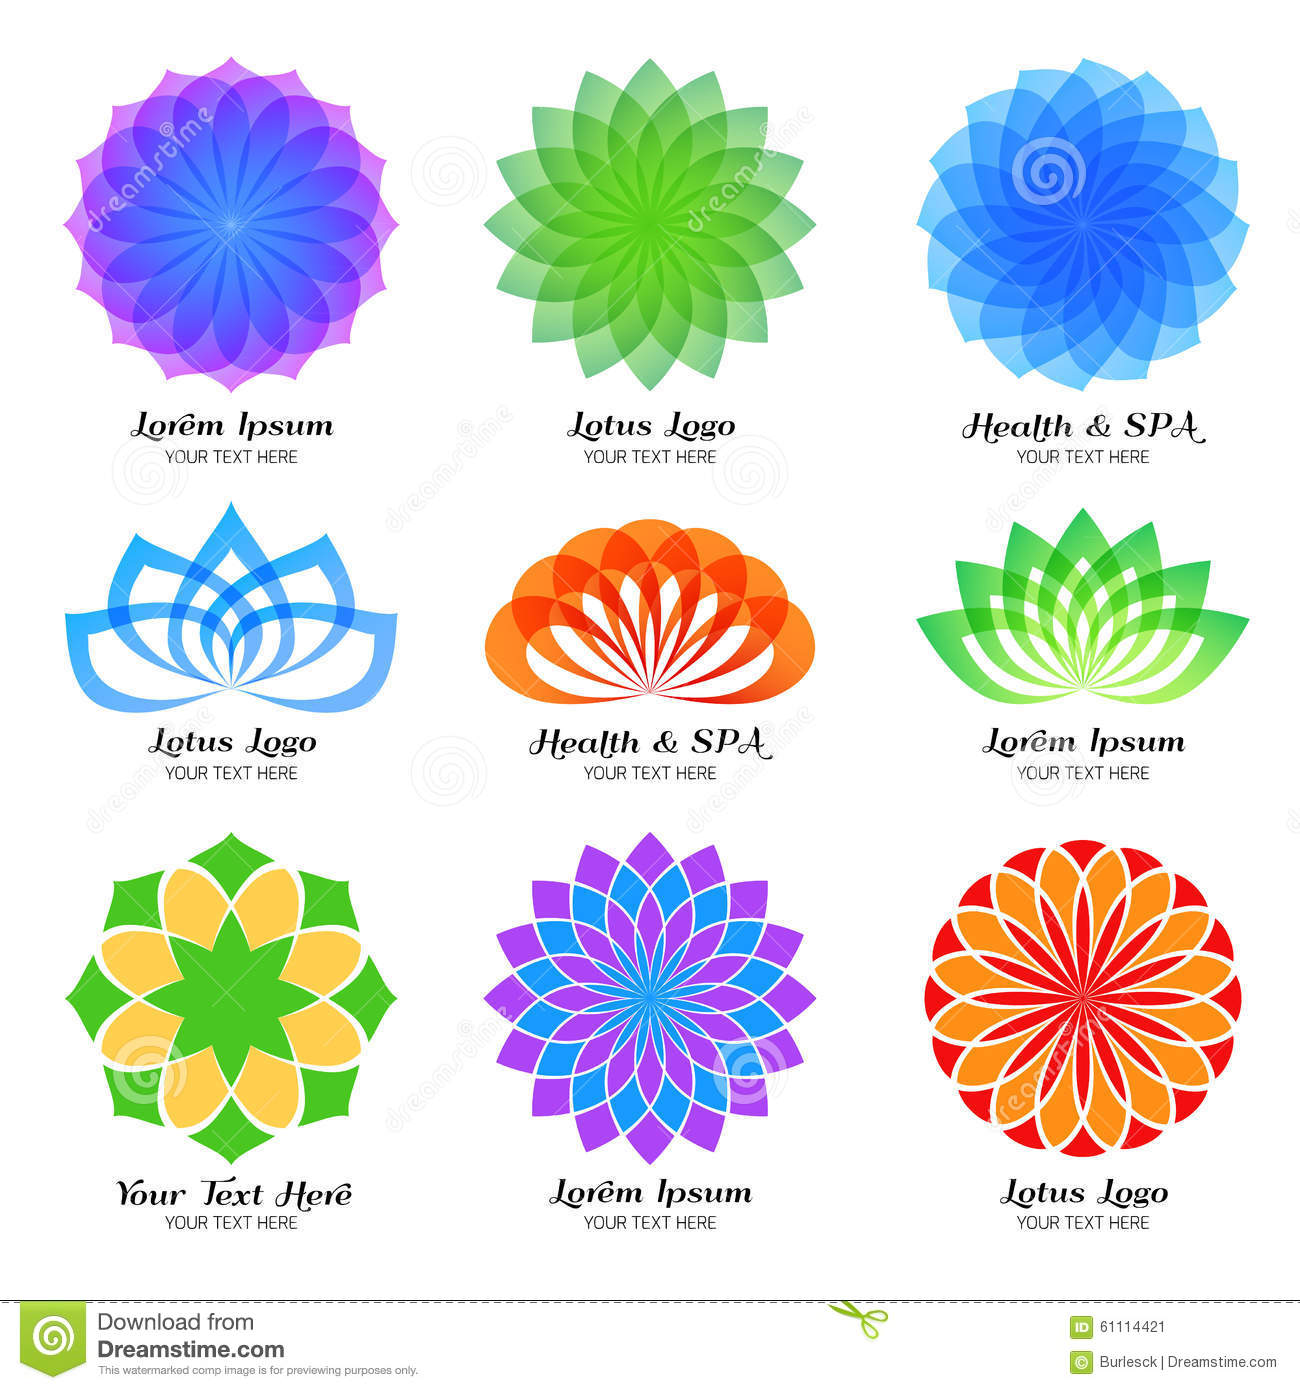 Lotus flower color meaning flowers gallery lotus flower color meaning image izmirmasajfo Images